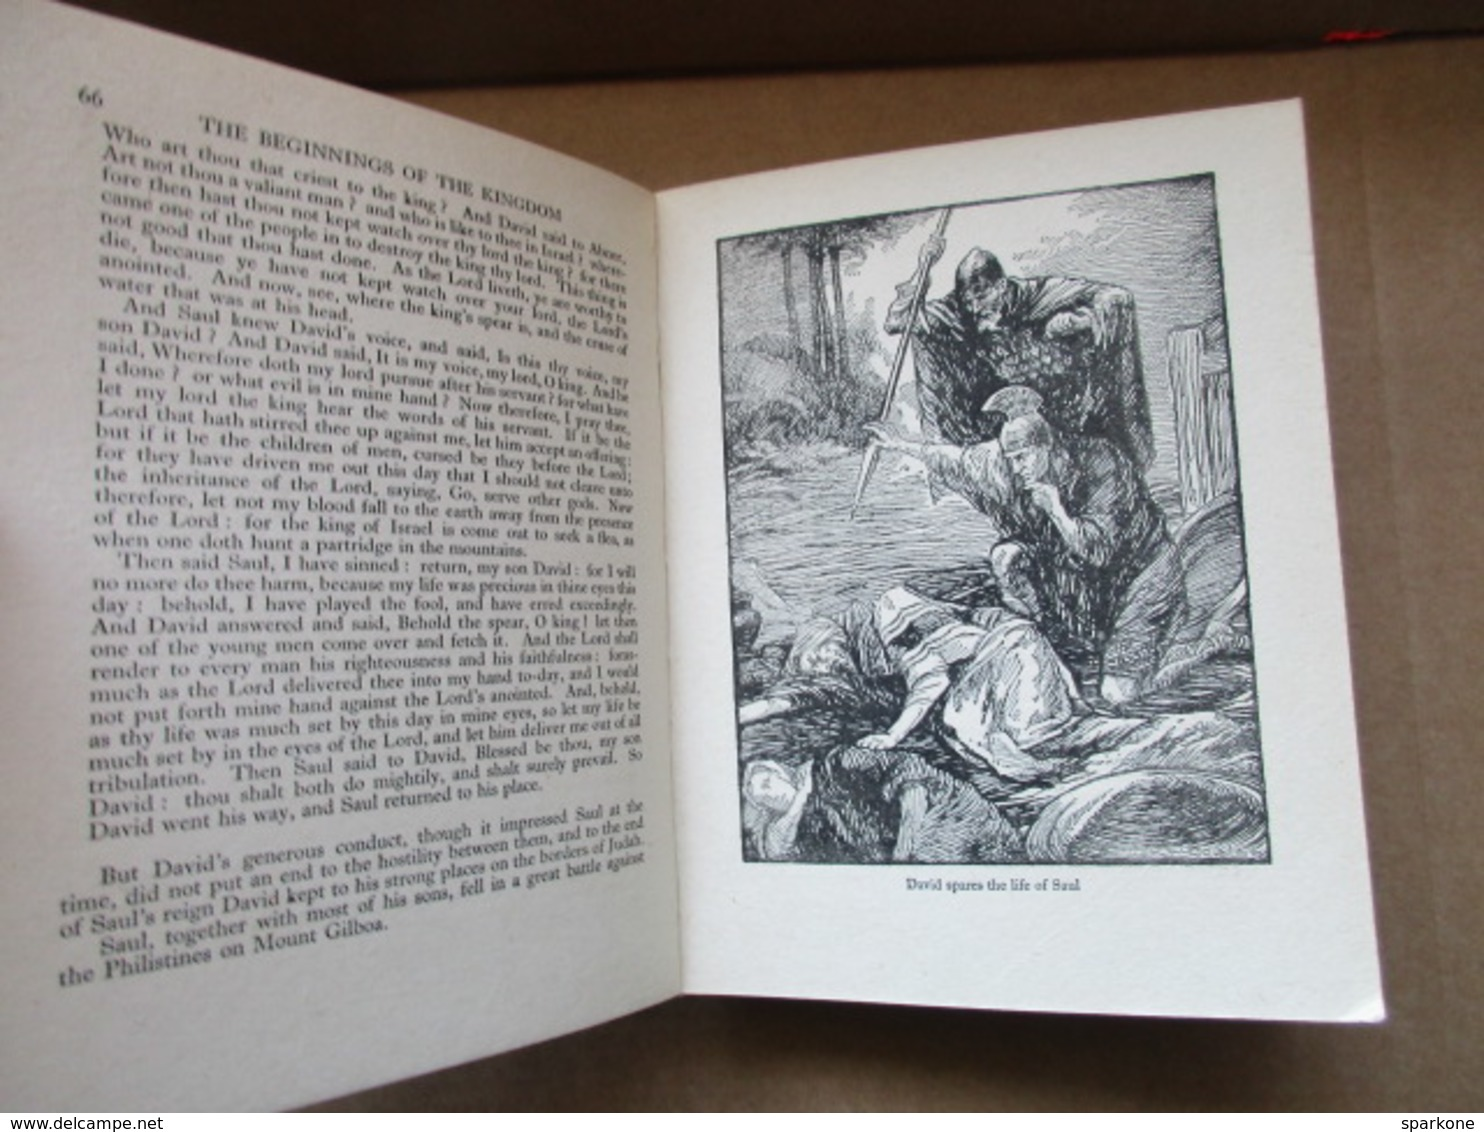 The Big Book Of The Bible (C. J. Kaberry) éditions De 1927 - Christianity, Bibles